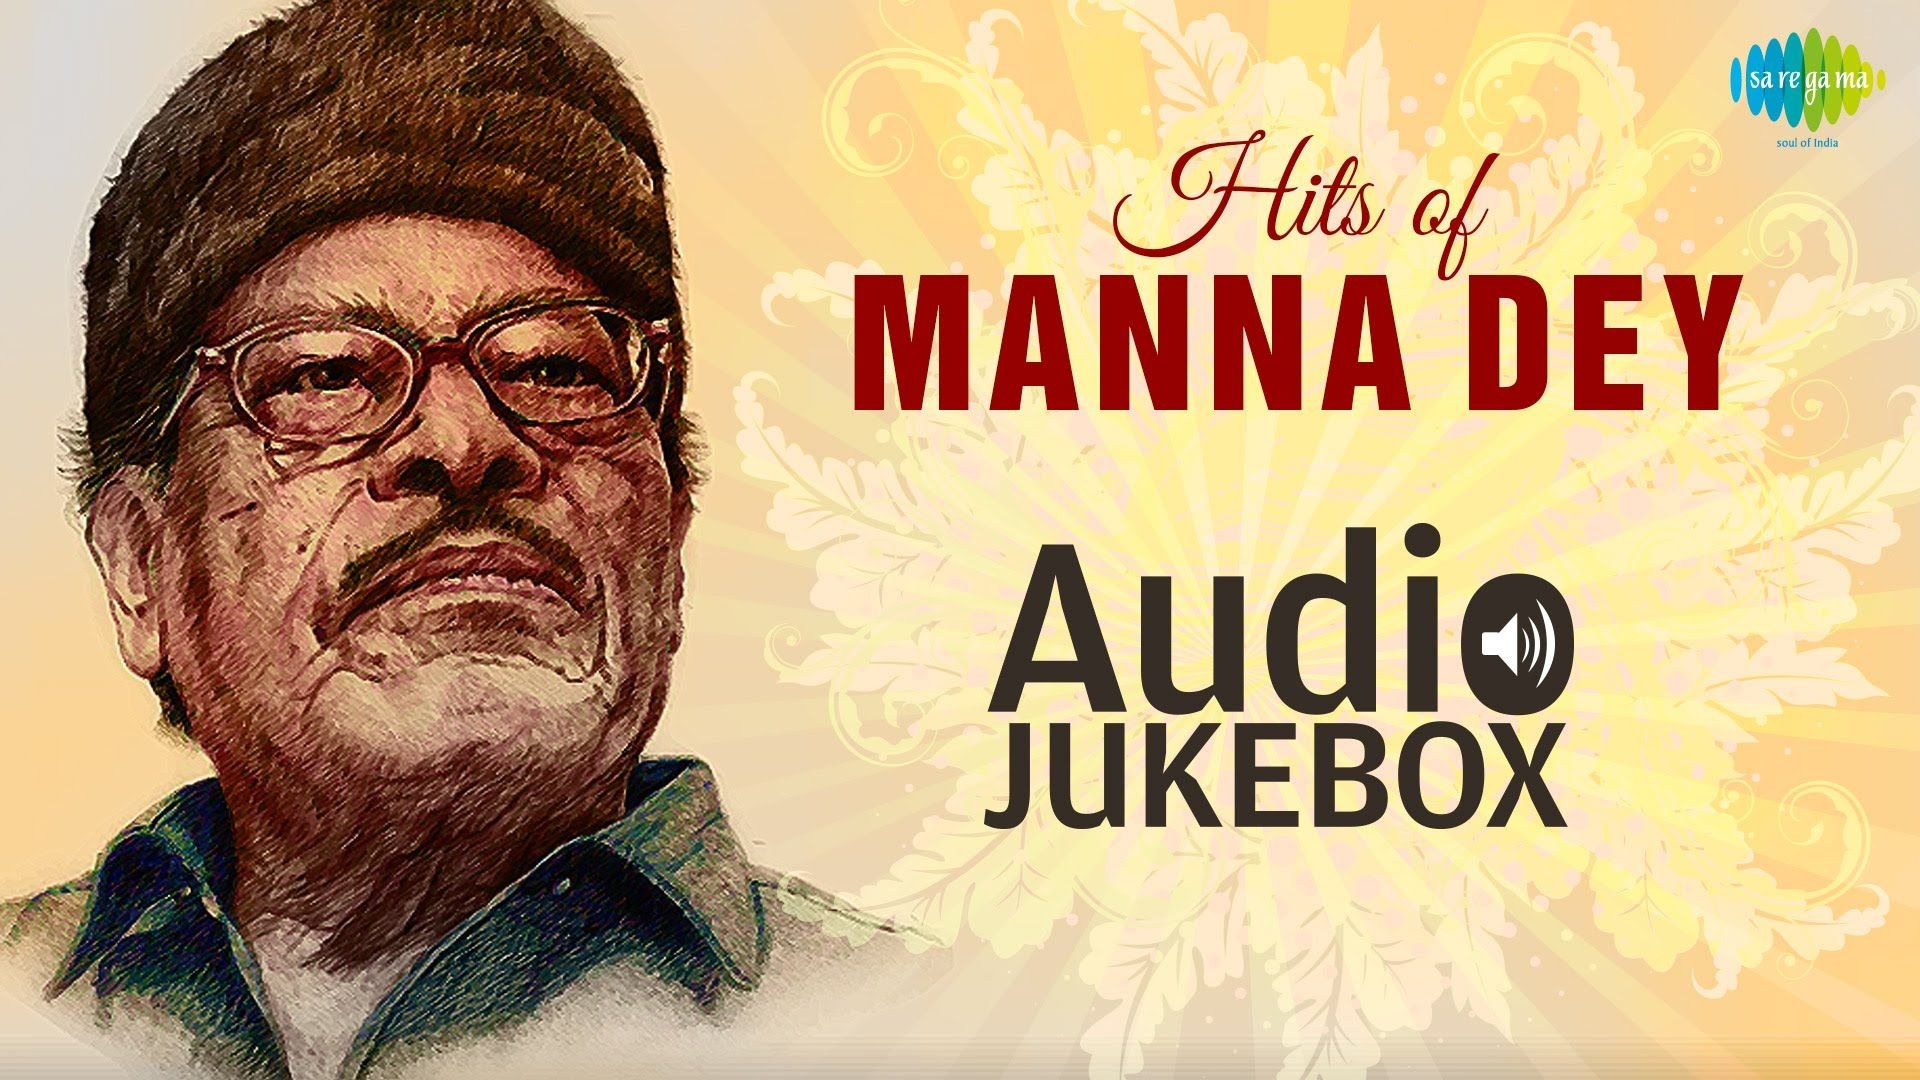 Best Of Manna Dey Vol 1 Old Bollywood Songs Audio Jukebox Old Bollywood Songs Audio Songs Songs